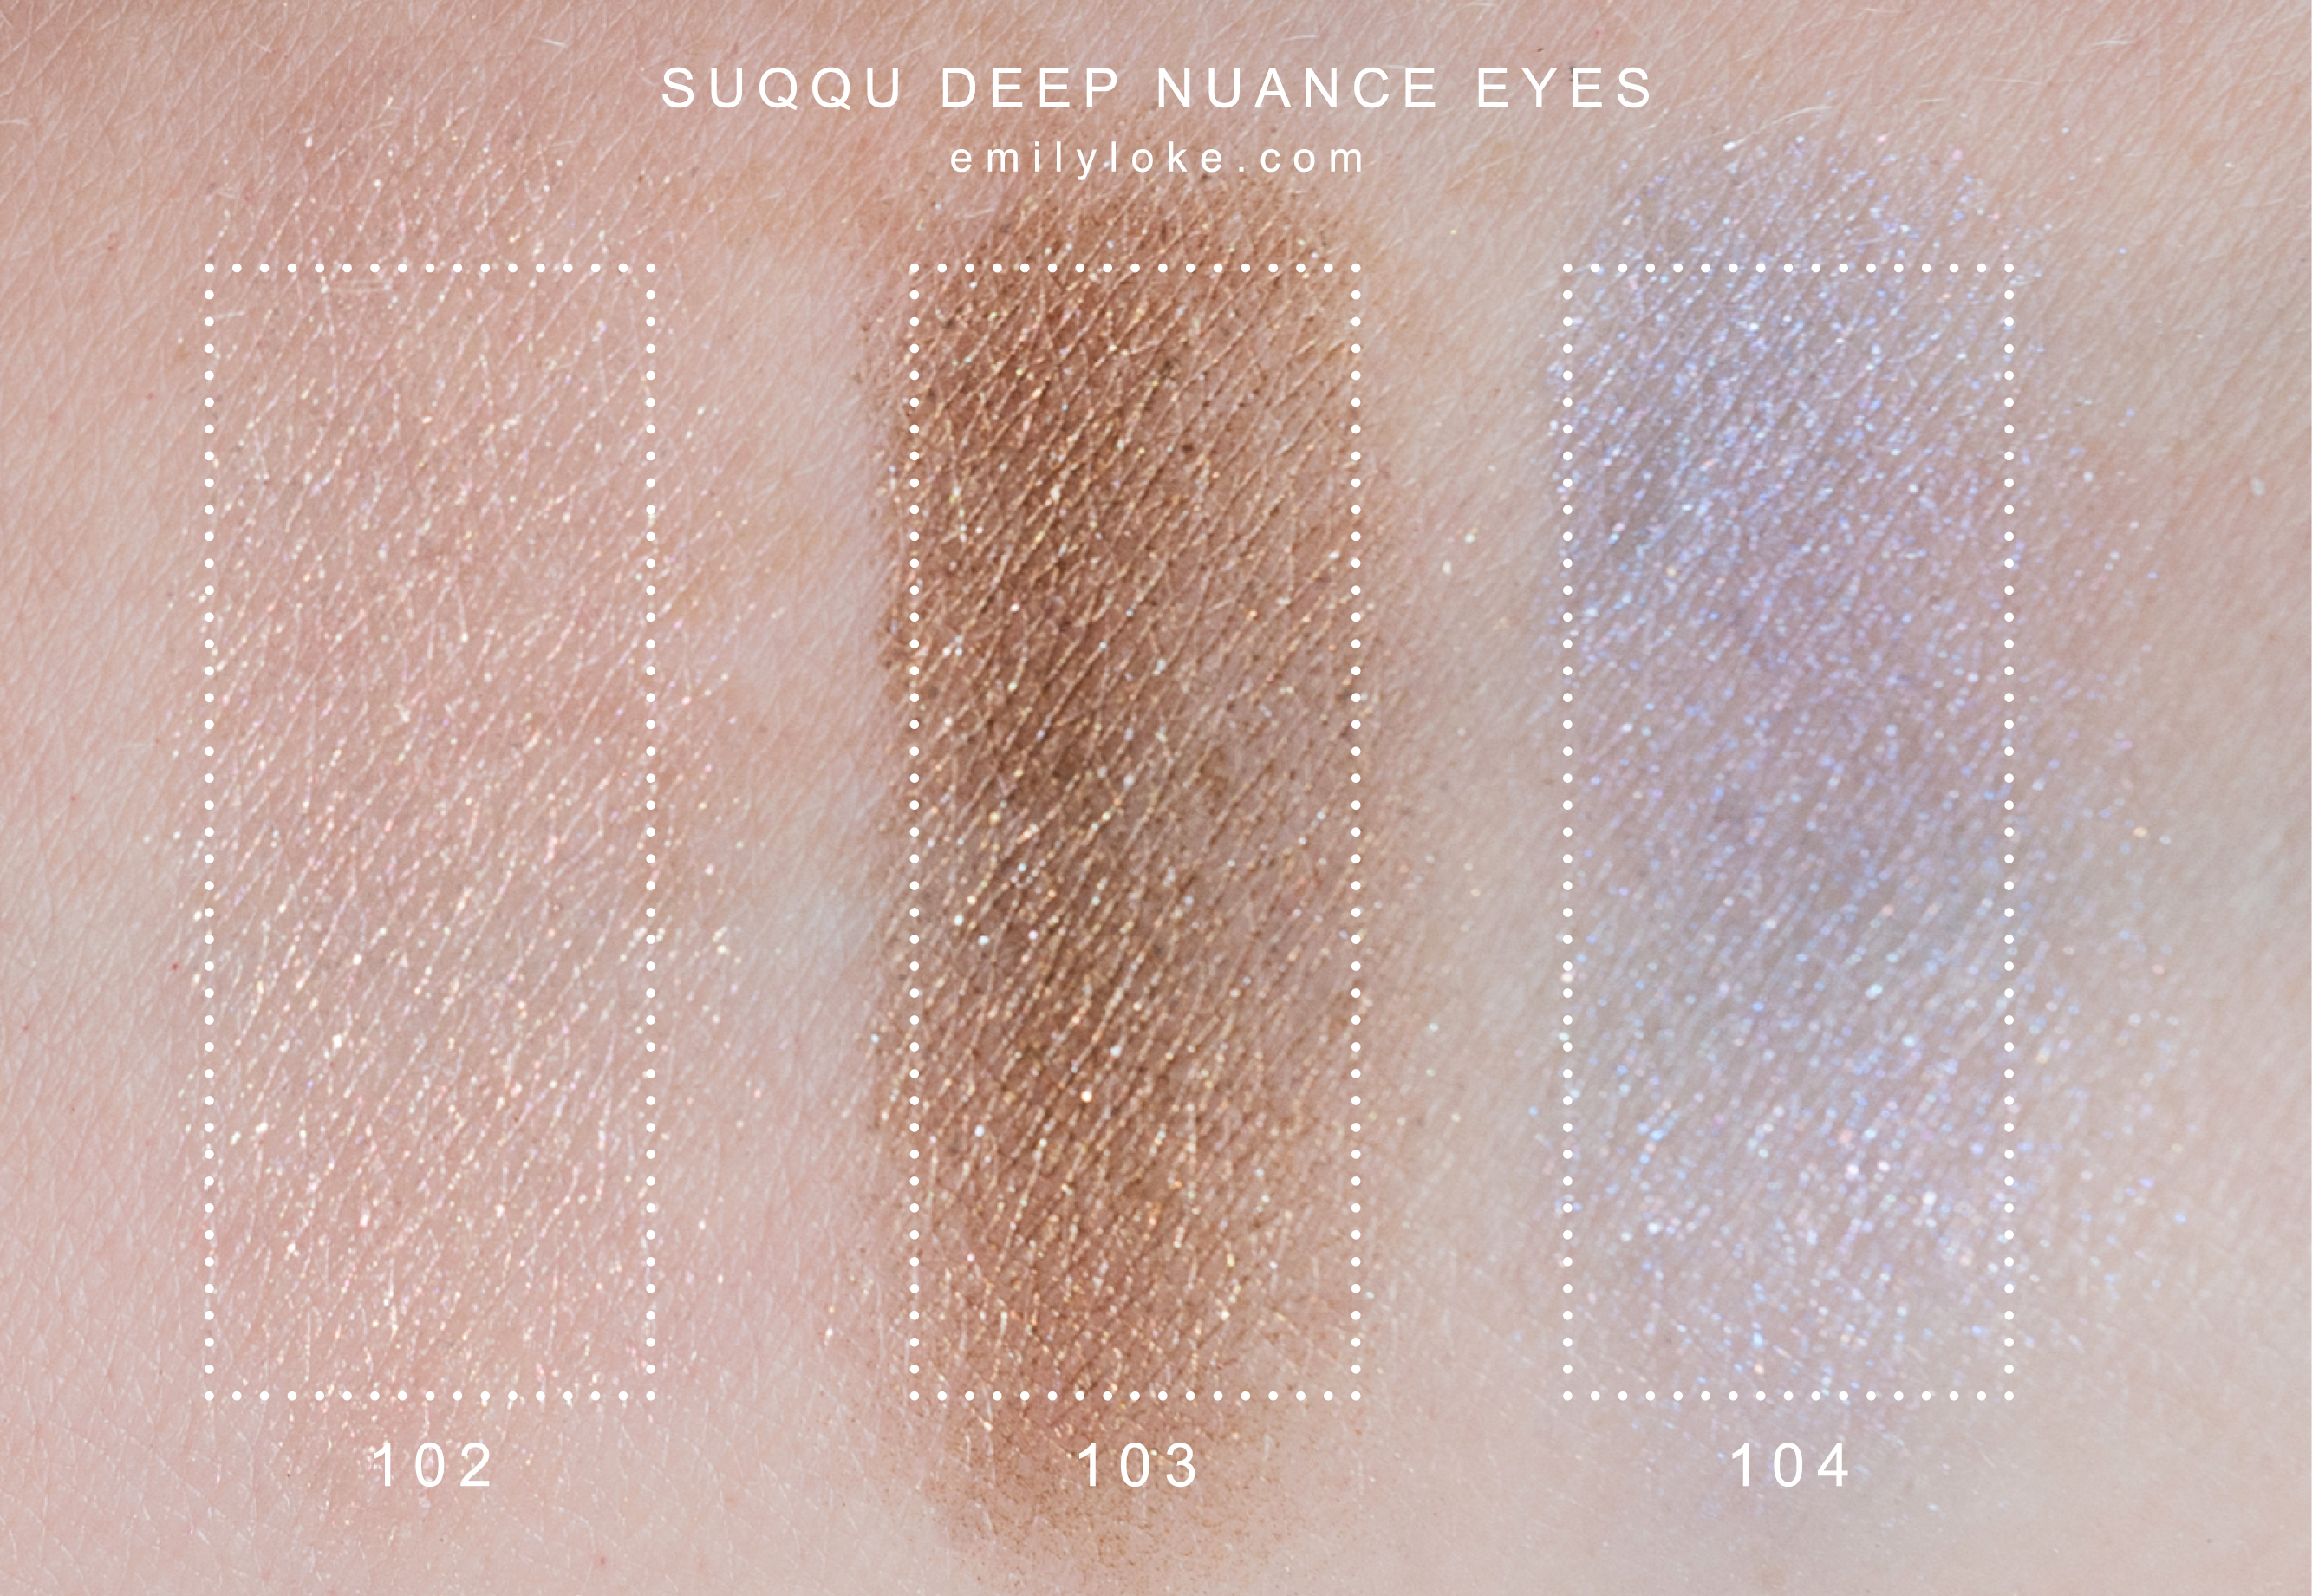 suqqu deep nuance eyes